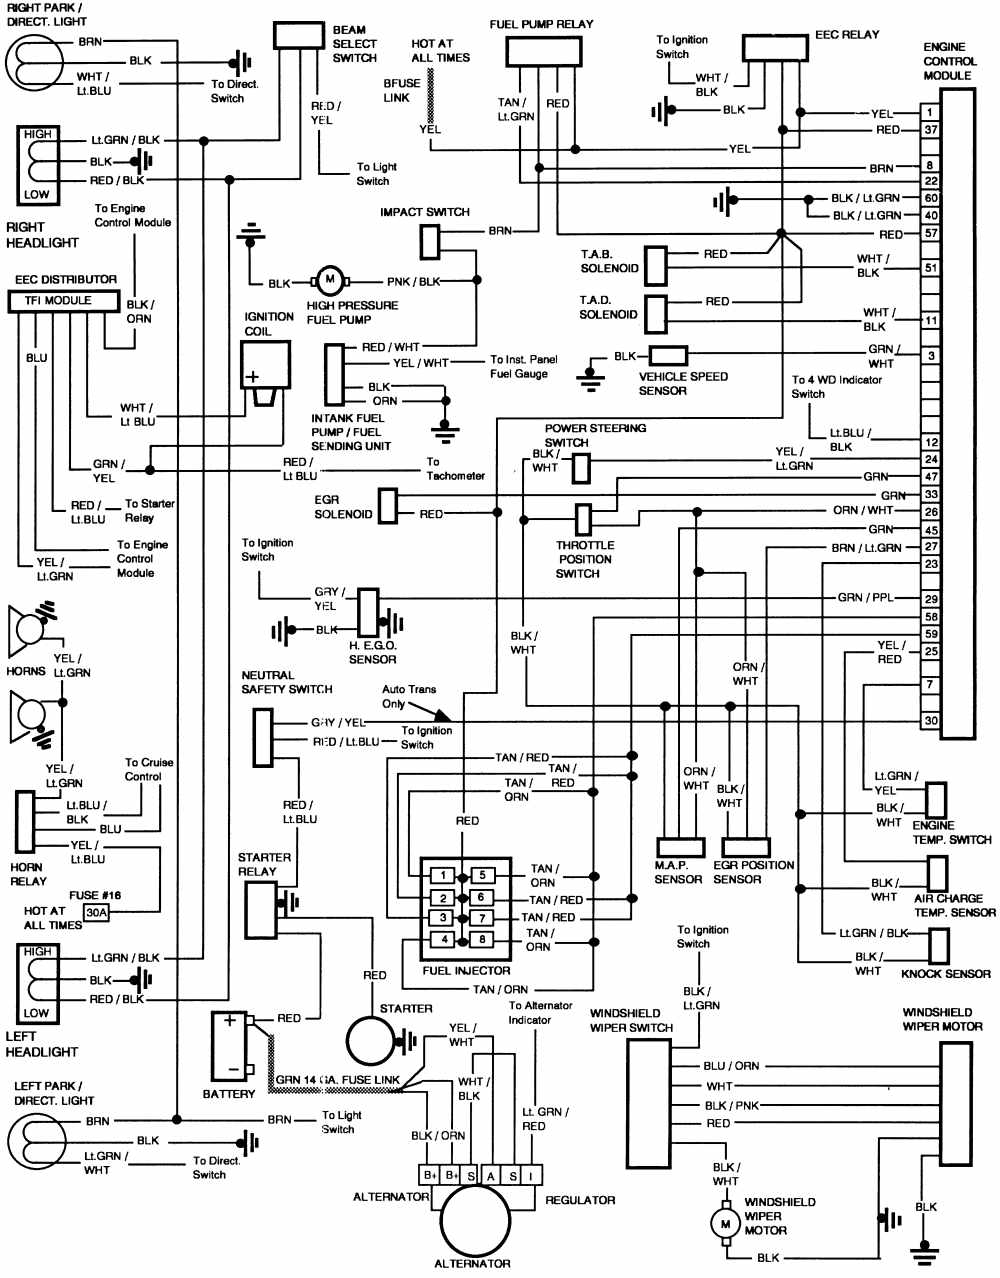 1989 ford f 250 ignition wiring diagram - wiring diagram log host-road -  host-road.superpolobio.it  superpolobio.it